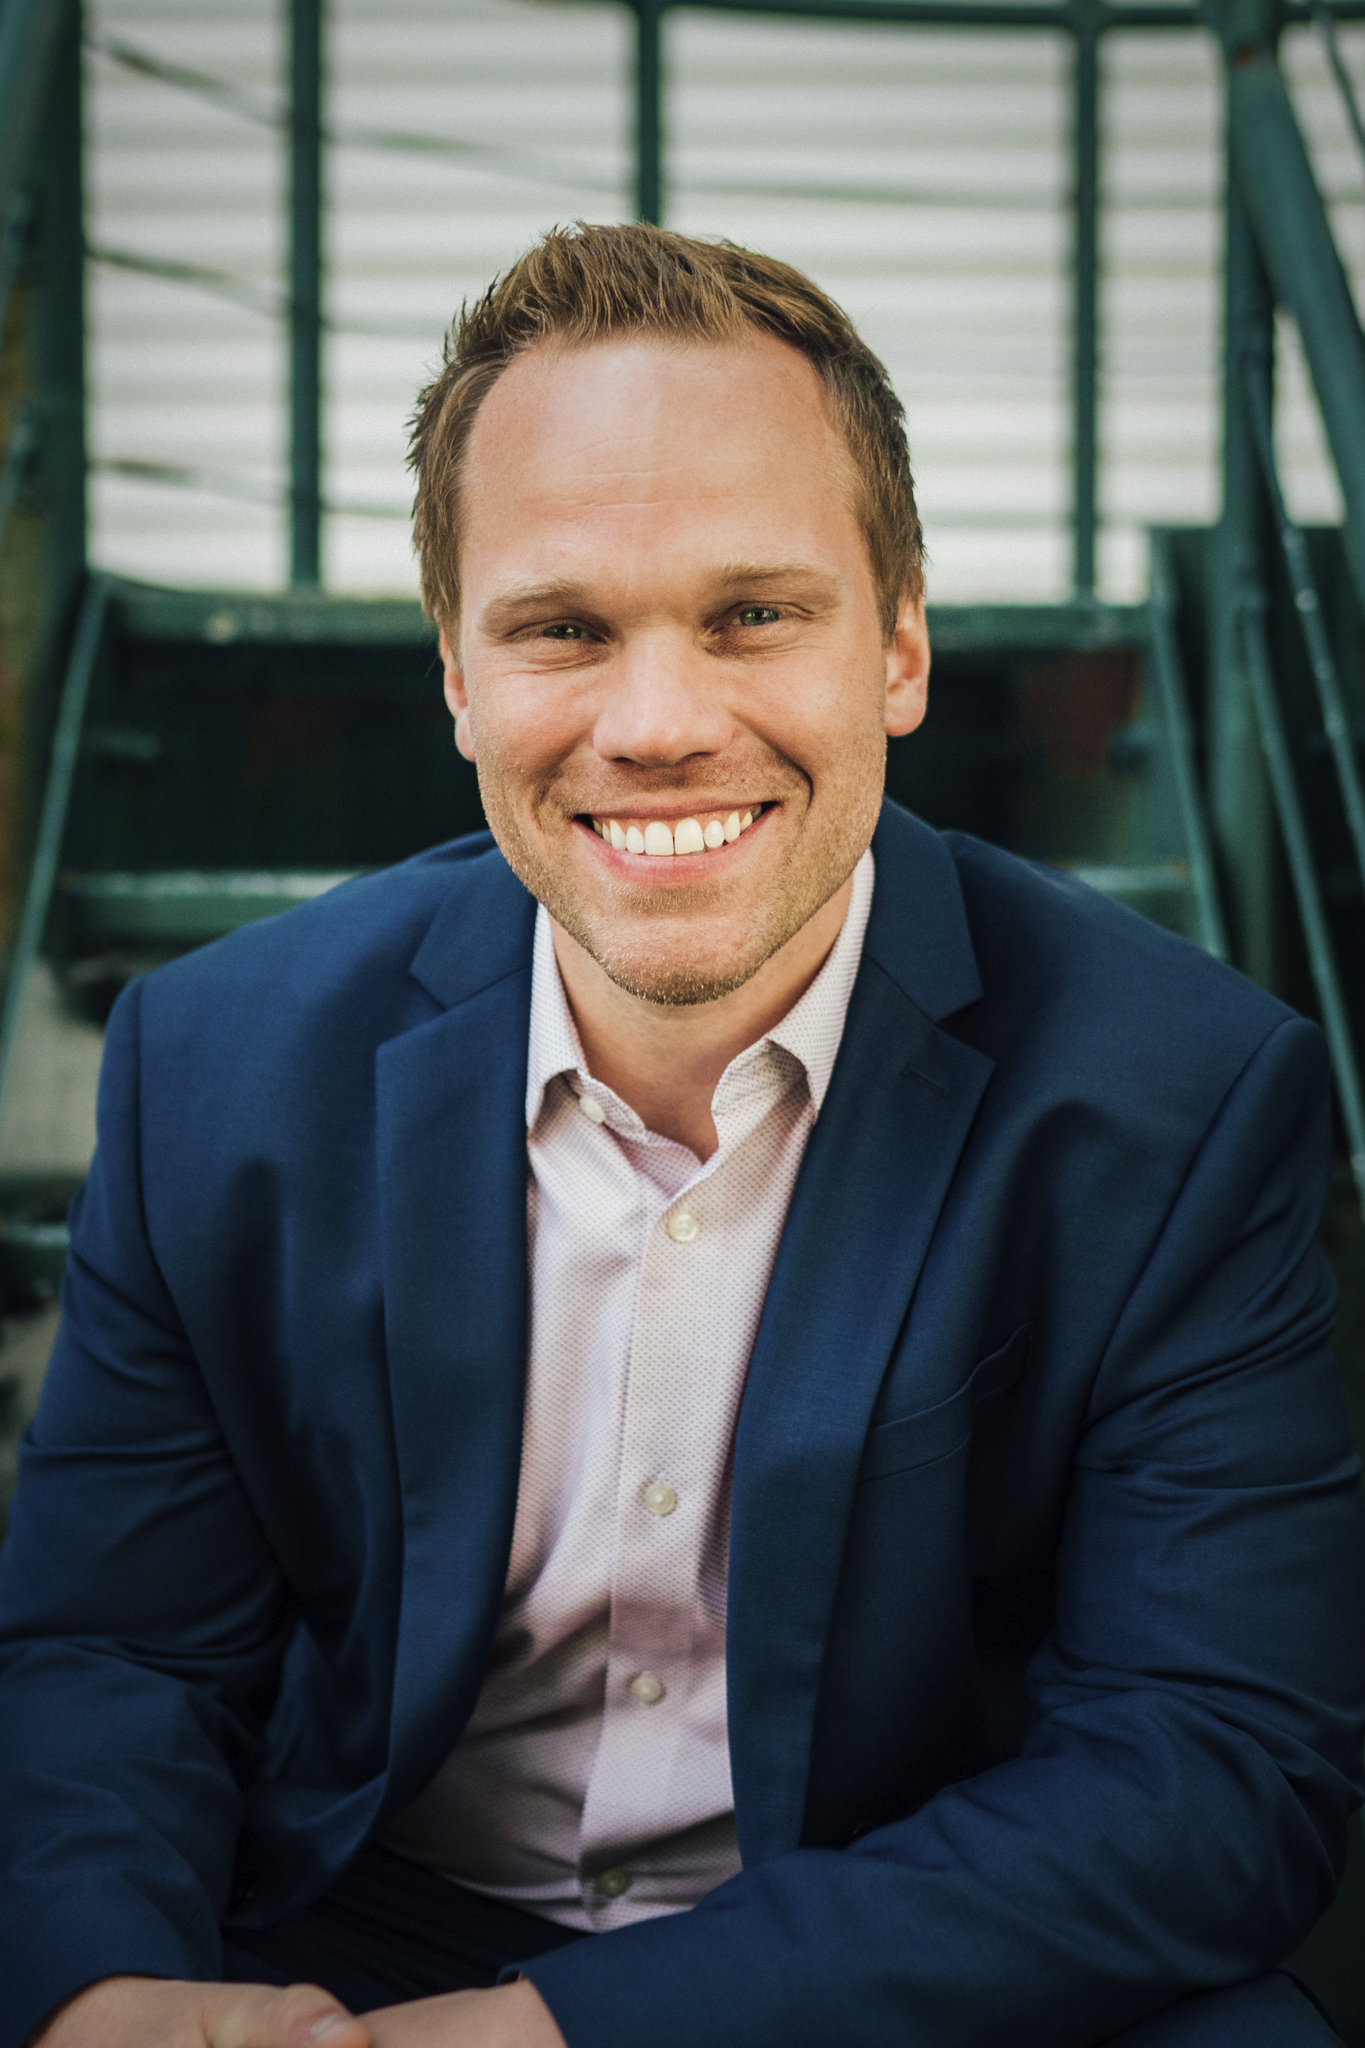 TREVOR PAWL, THE NEW HEAD OF THE OFFICE OF FUTURE MOBILITY AND ELECTRIFICATION